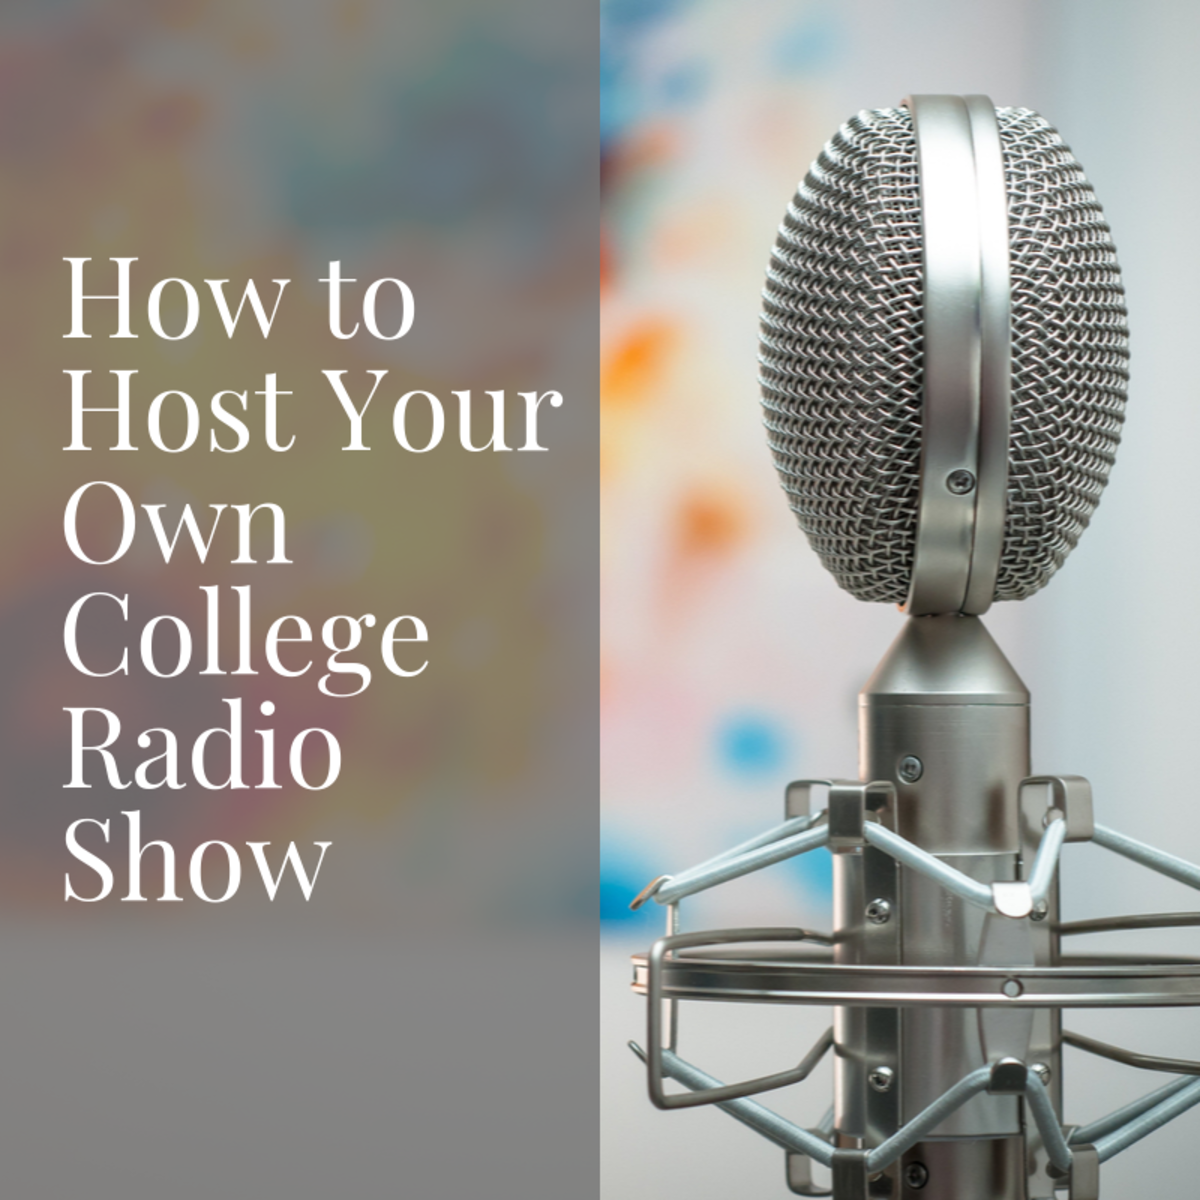 Hosting your own college radio show is fun and rewarding if you do a little show planning and preparation.